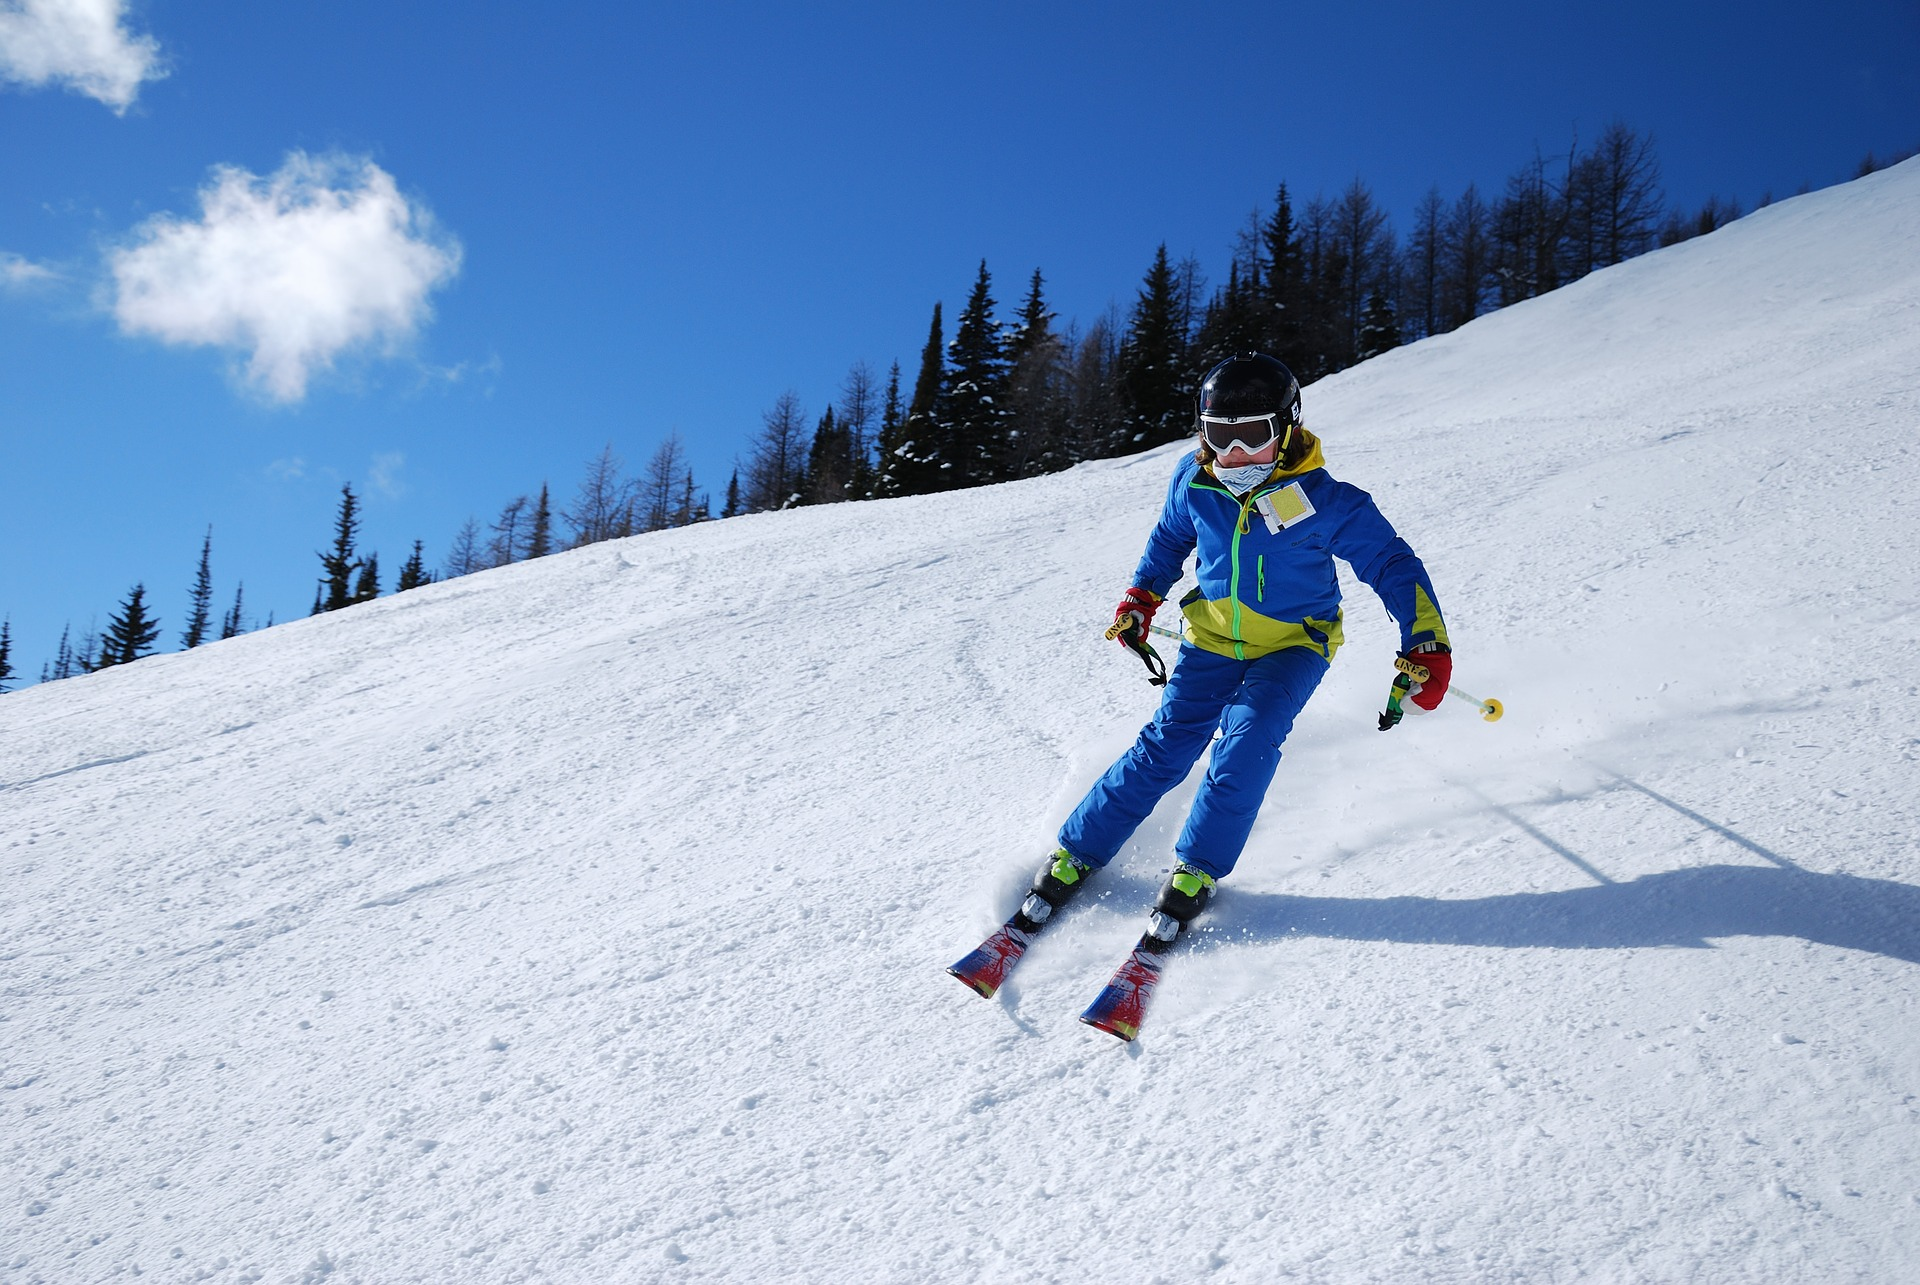 Skier slaloming down a hill